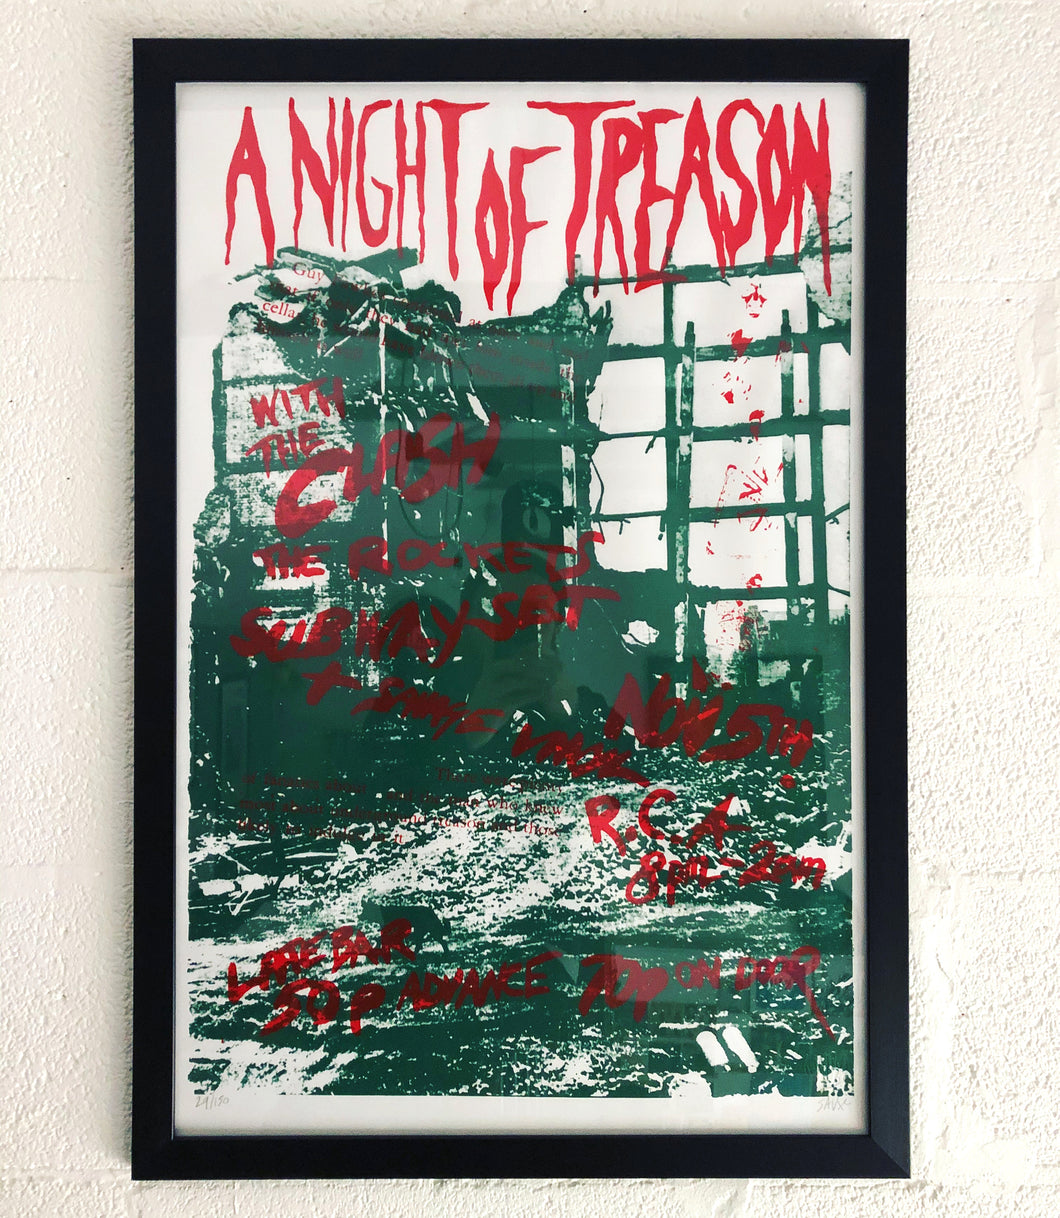 The Clash 'Night of Treason' Limited Edition Signed & Numbered Screen Print